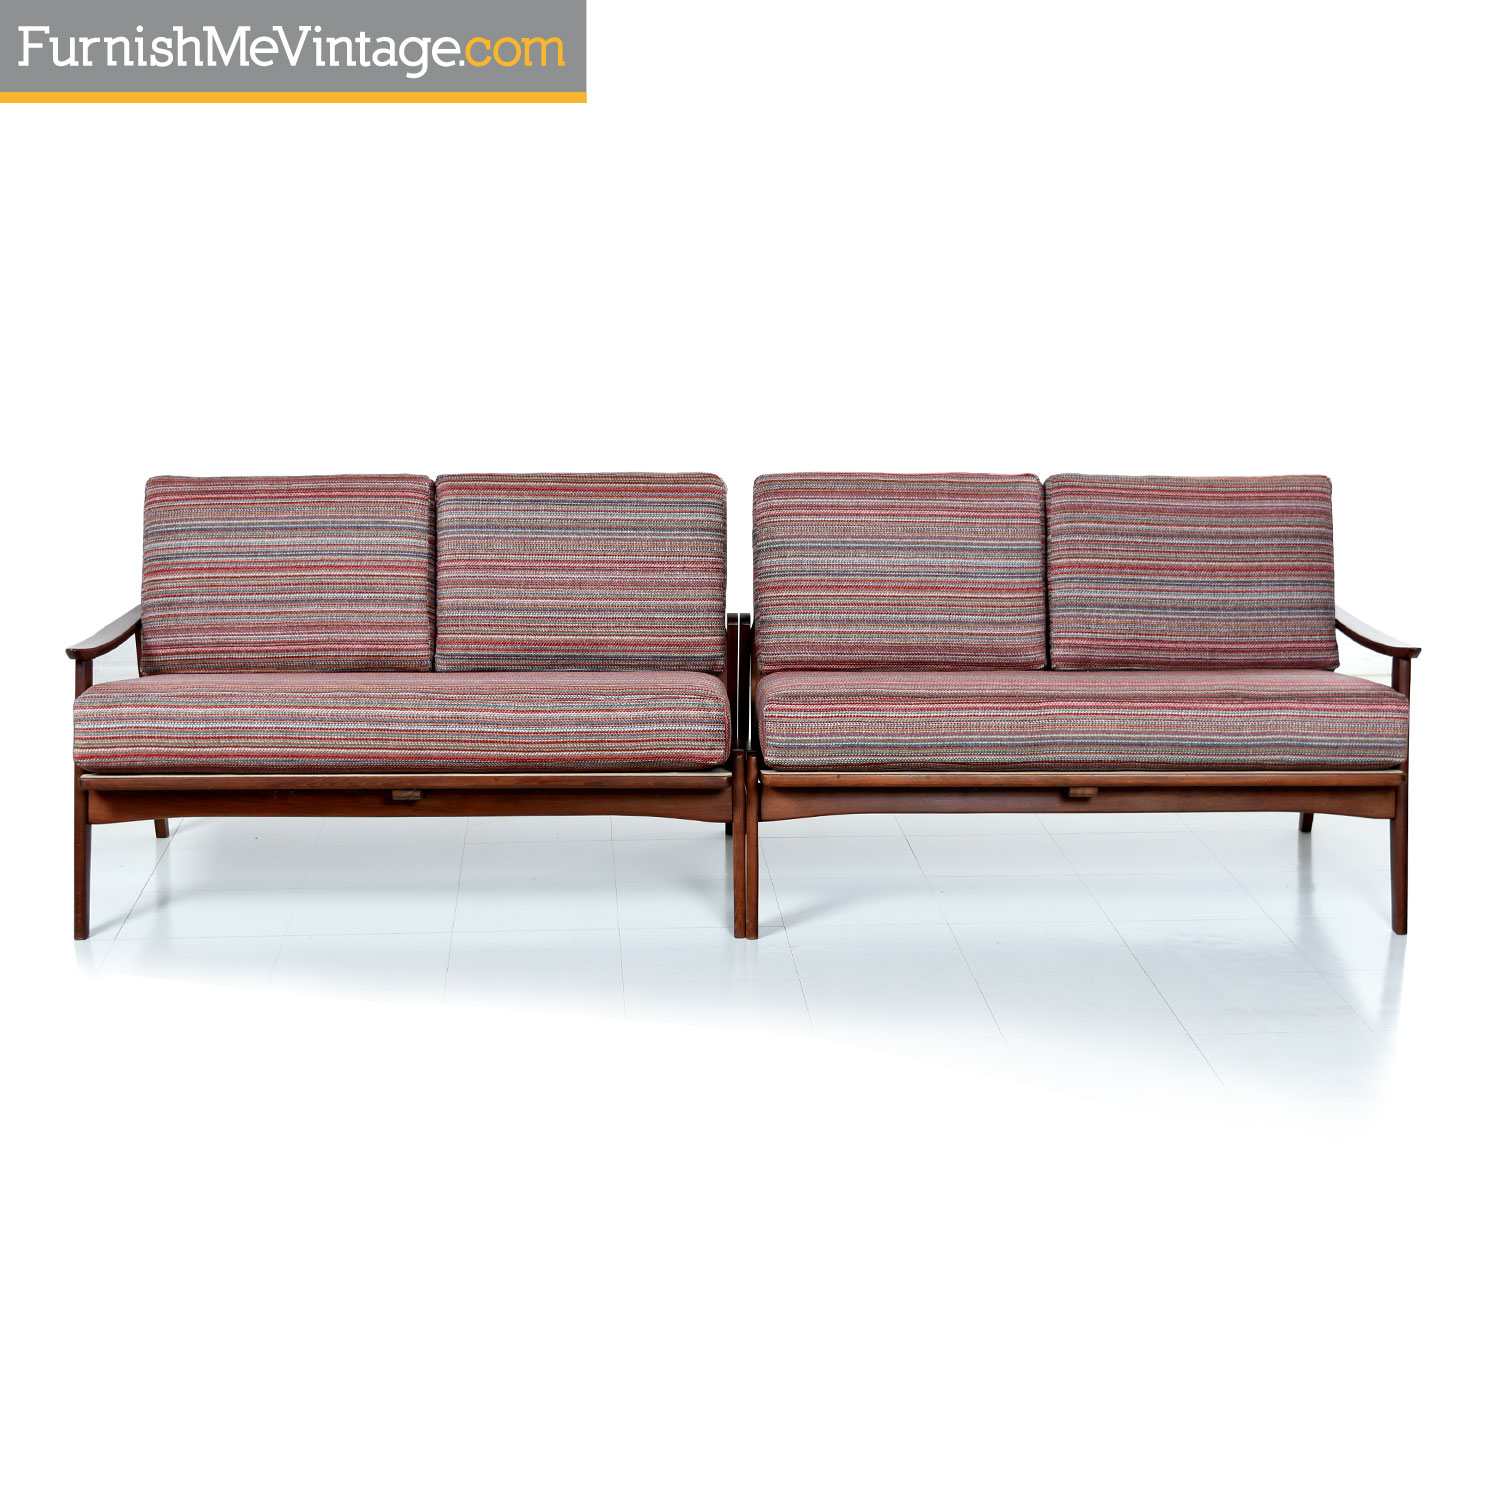 italian mid century modern two piece sofa sectional